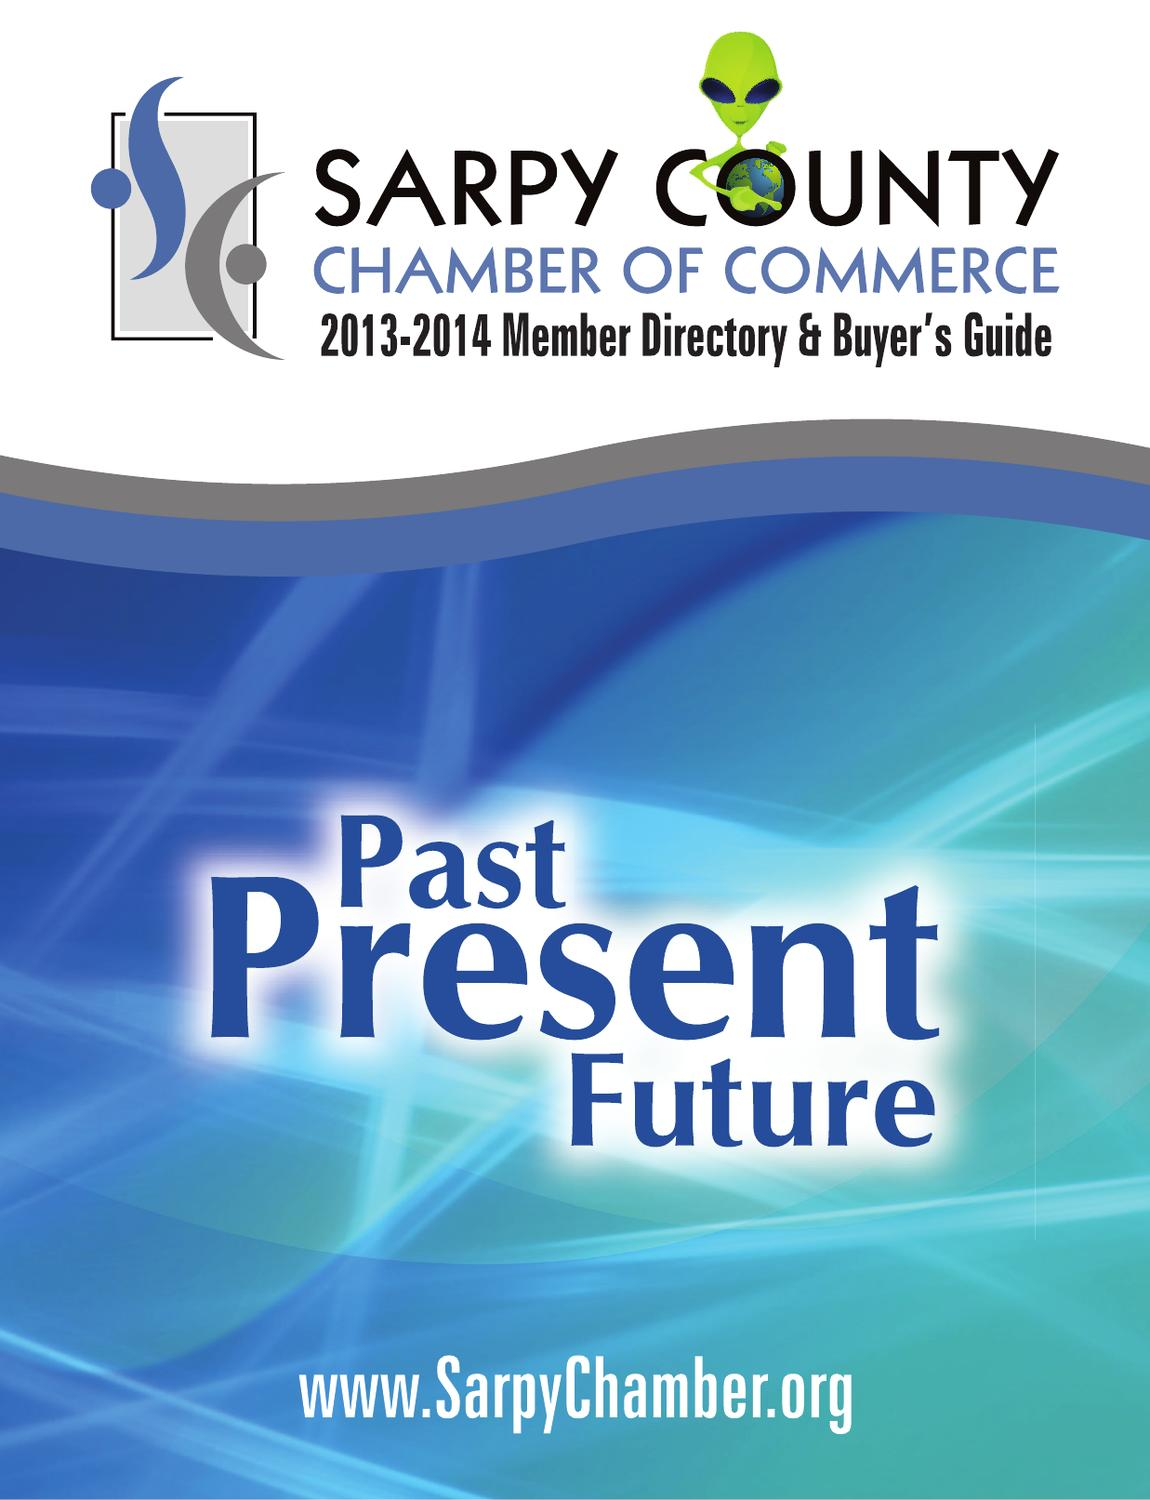 Sarpy County Chamber of Commerce 2013 Directory by Suburban